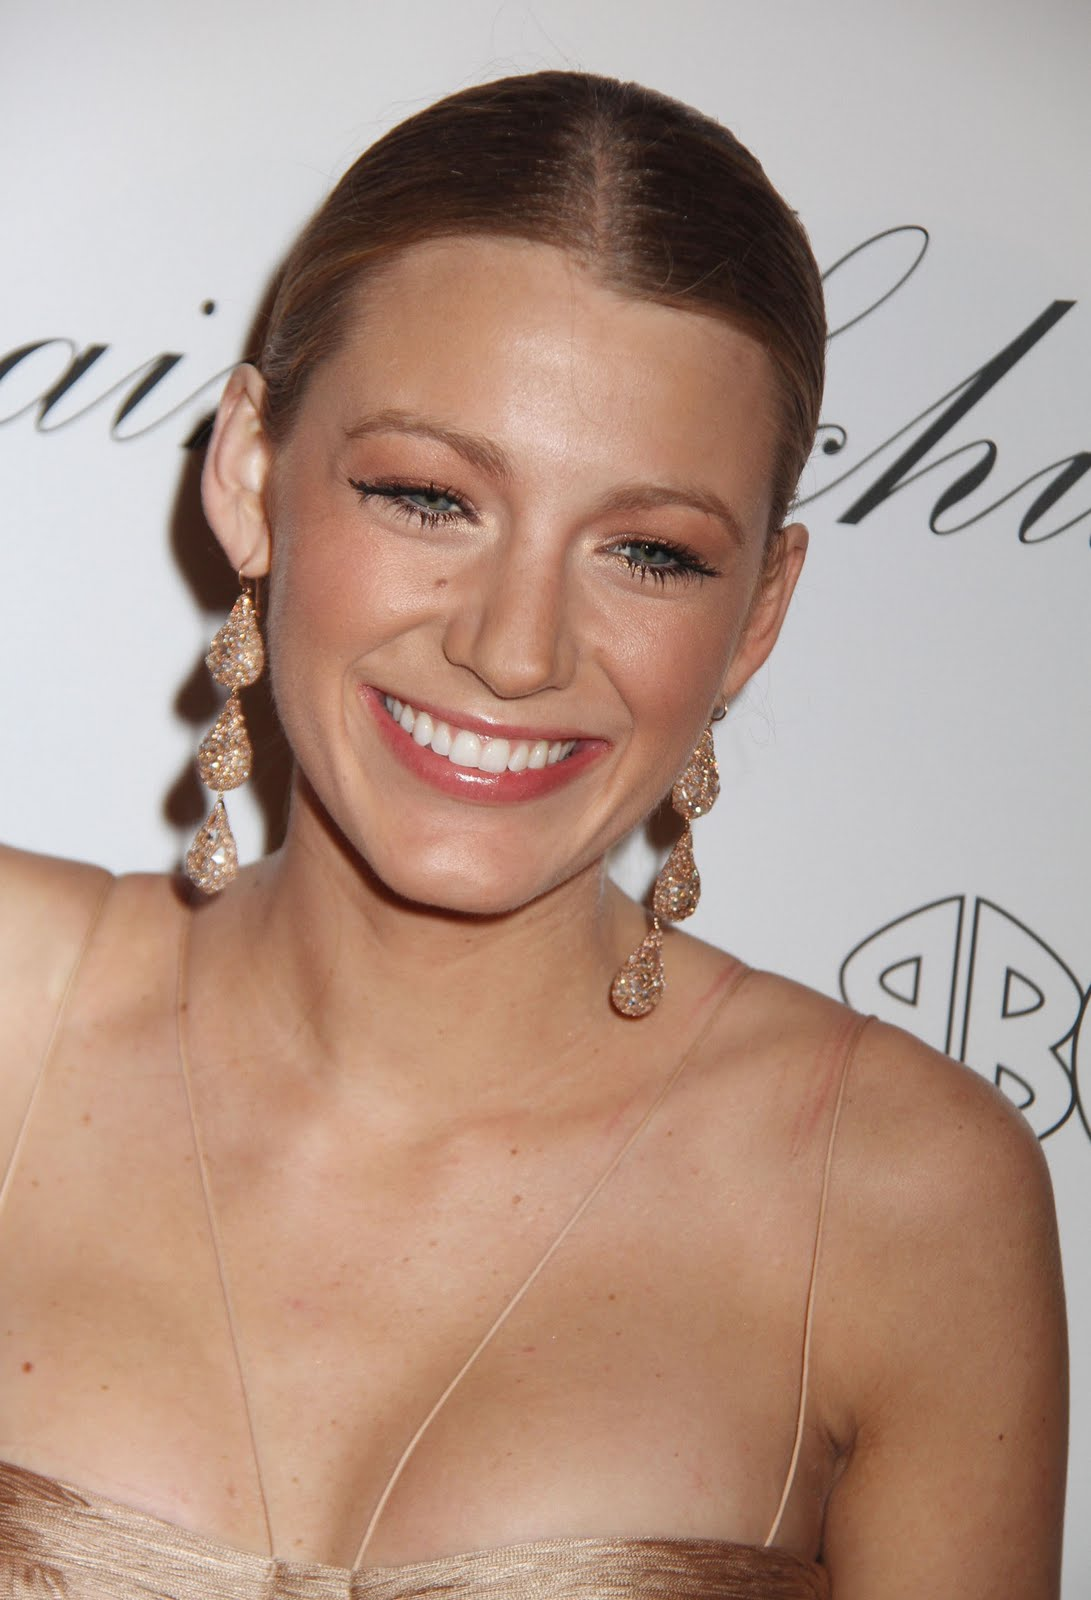 Blake Lively - Photos - Vogue